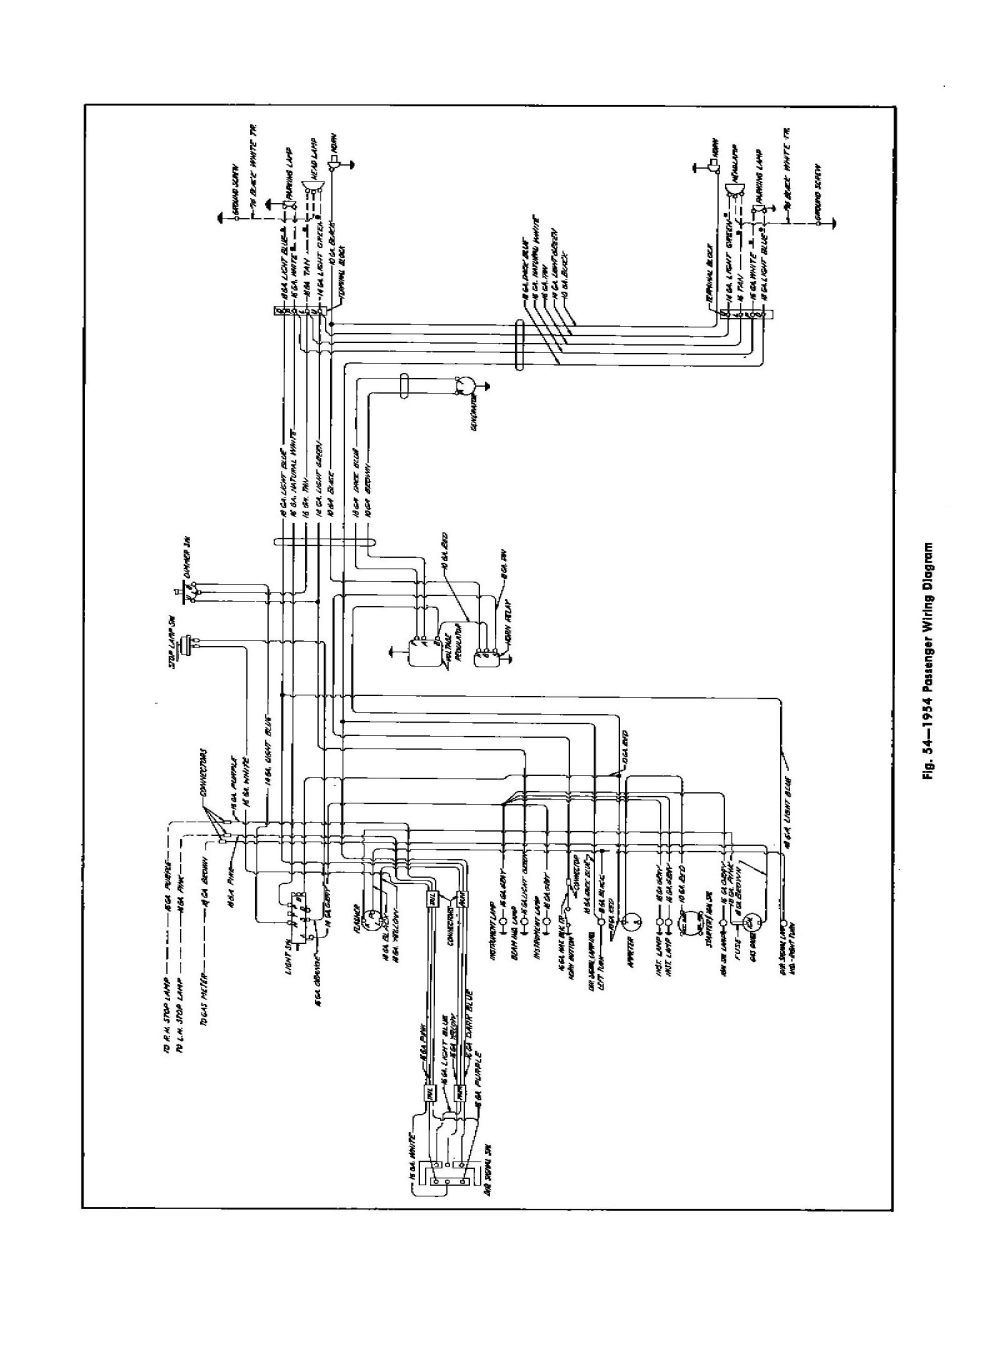 medium resolution of complete wiring diagram for 1954 chevrolet truck wiring diagram online 1967 chevy pickup headlight wiring diagram 1954 chevy wiring diagram